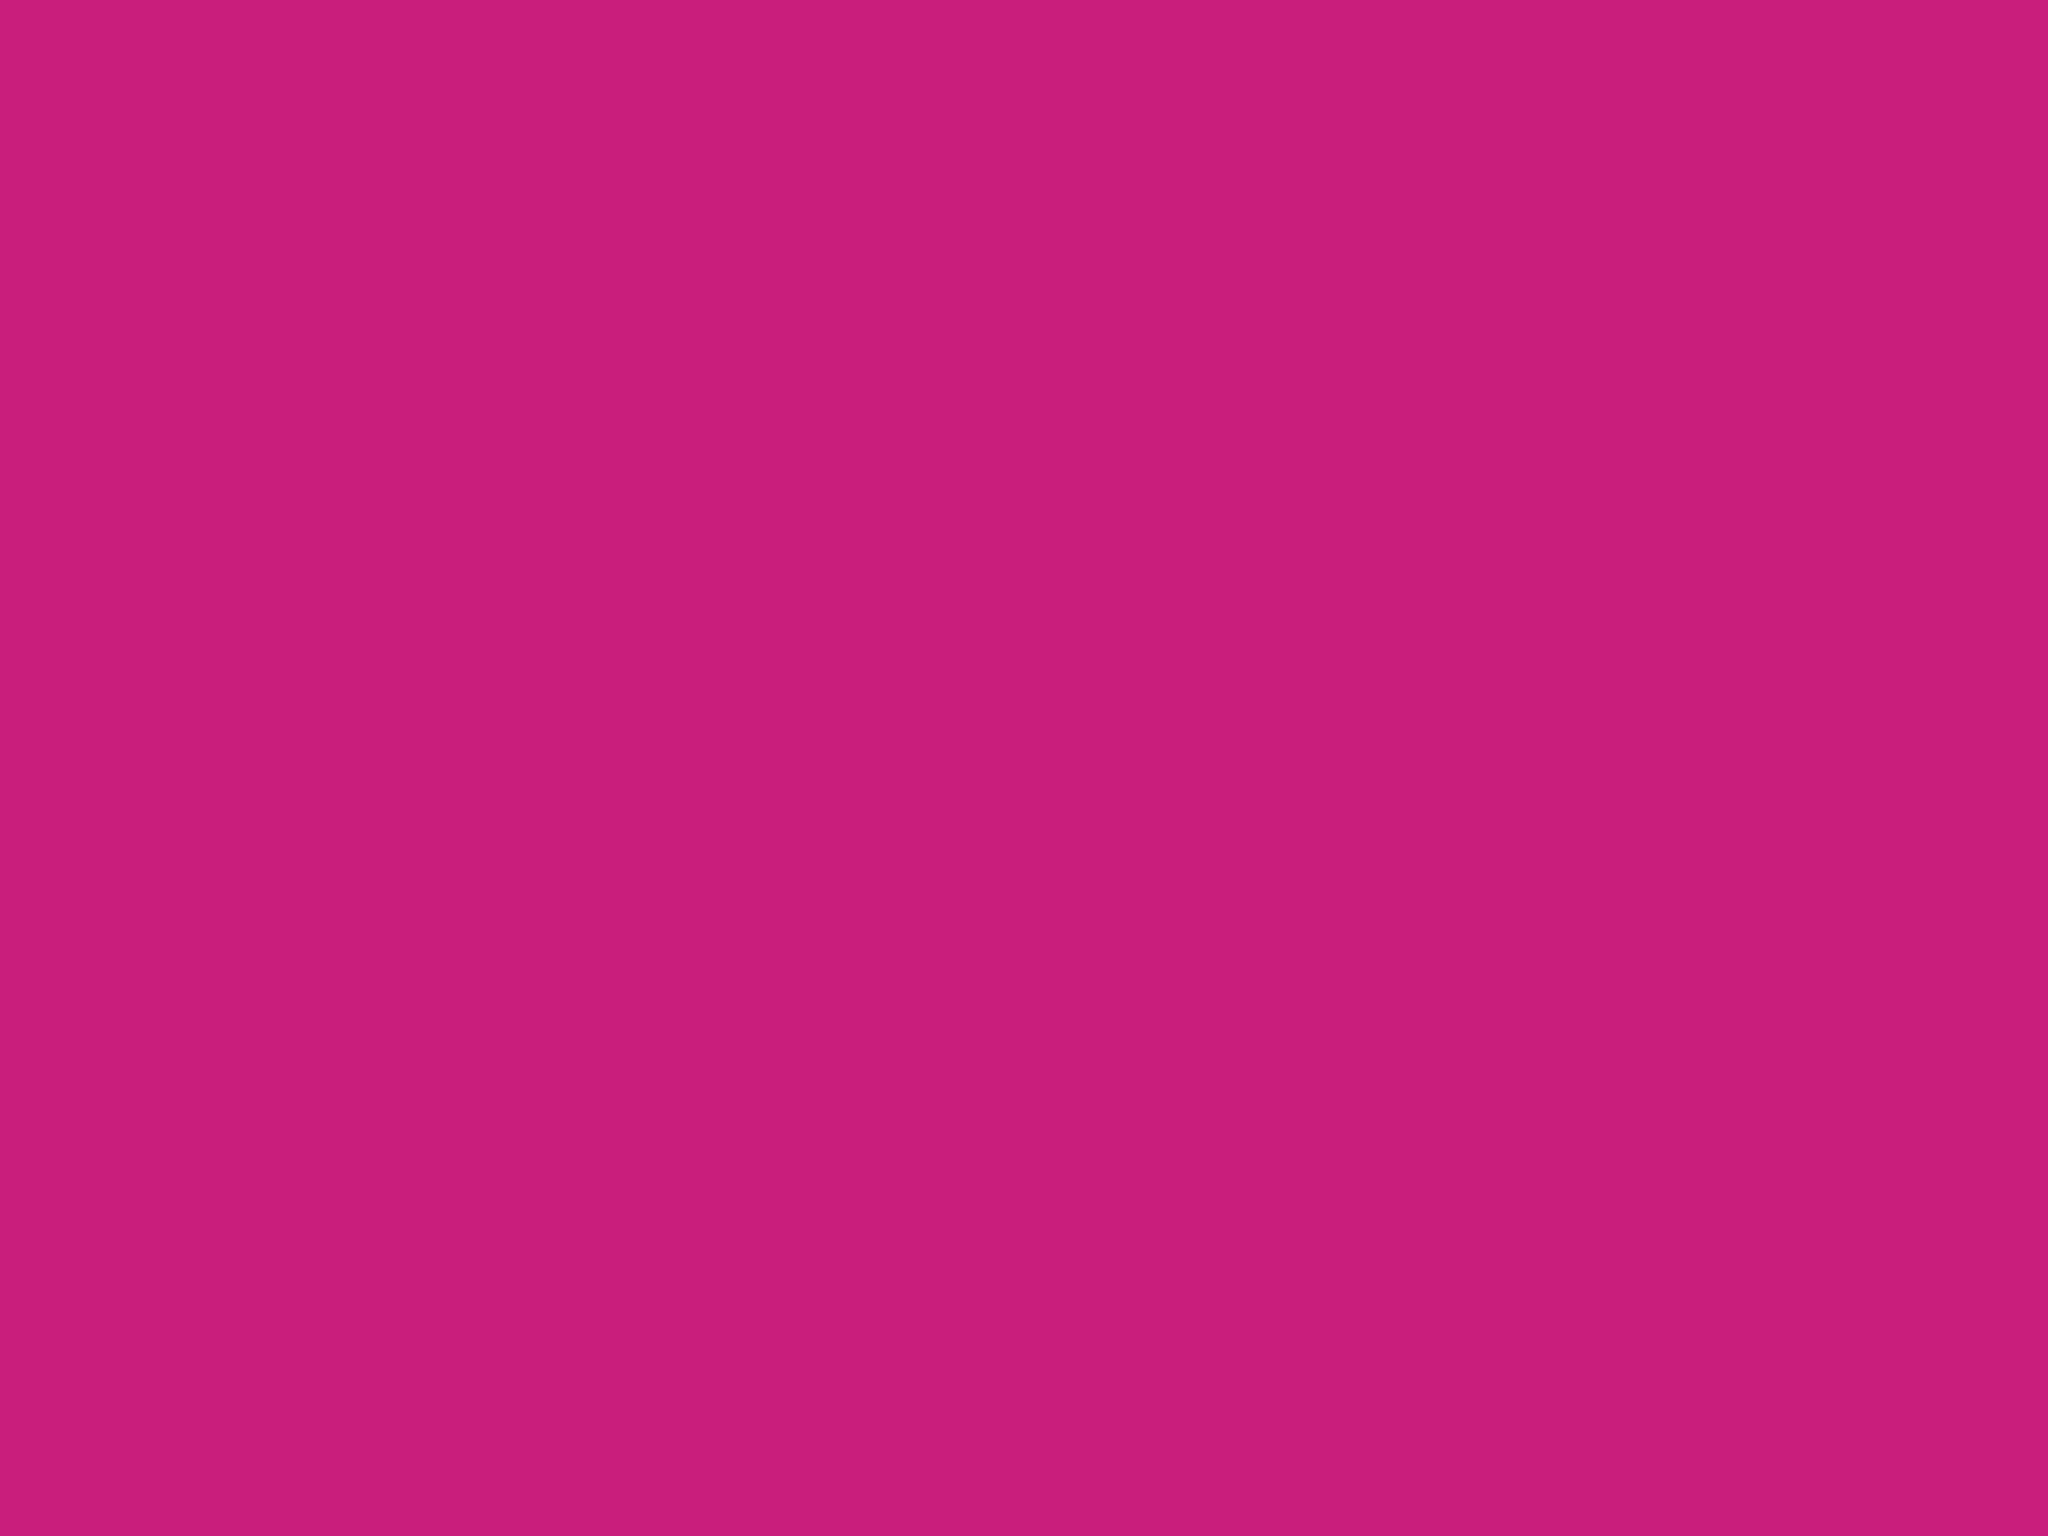 2048x1536 Magenta Dye Solid Color Background